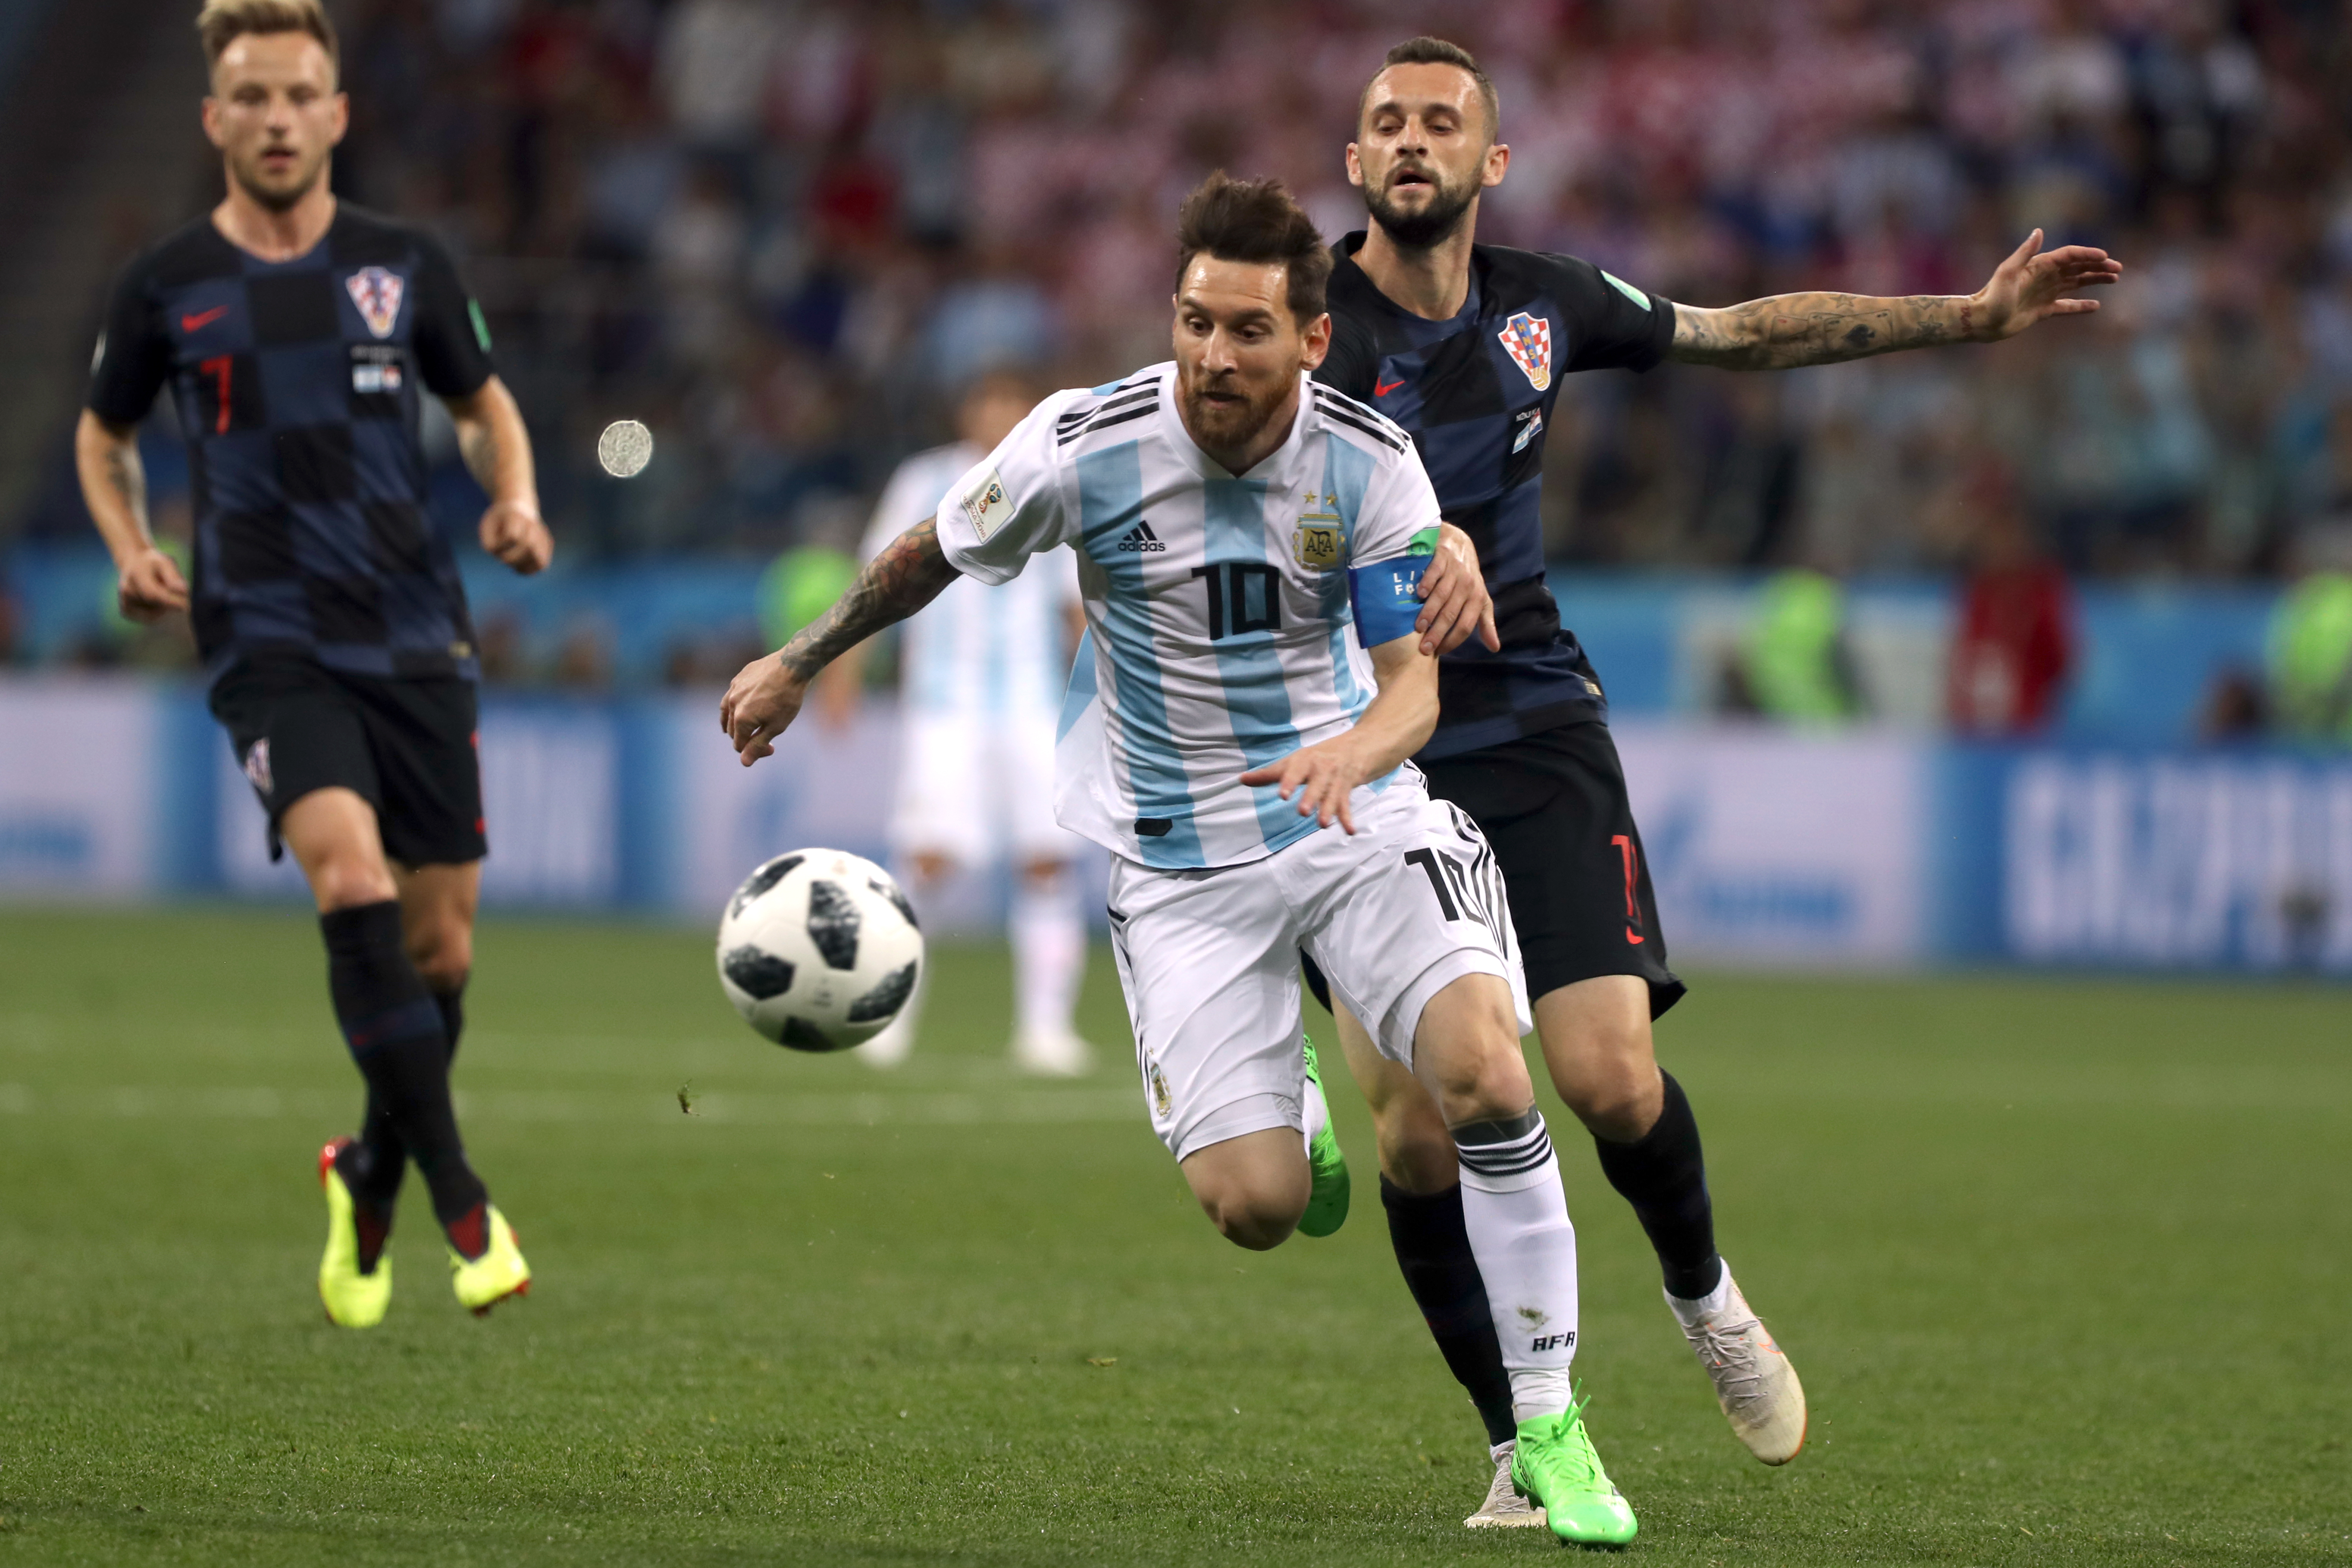 fifa world cup 2018 argentina vs croatia صحيفة توووفه